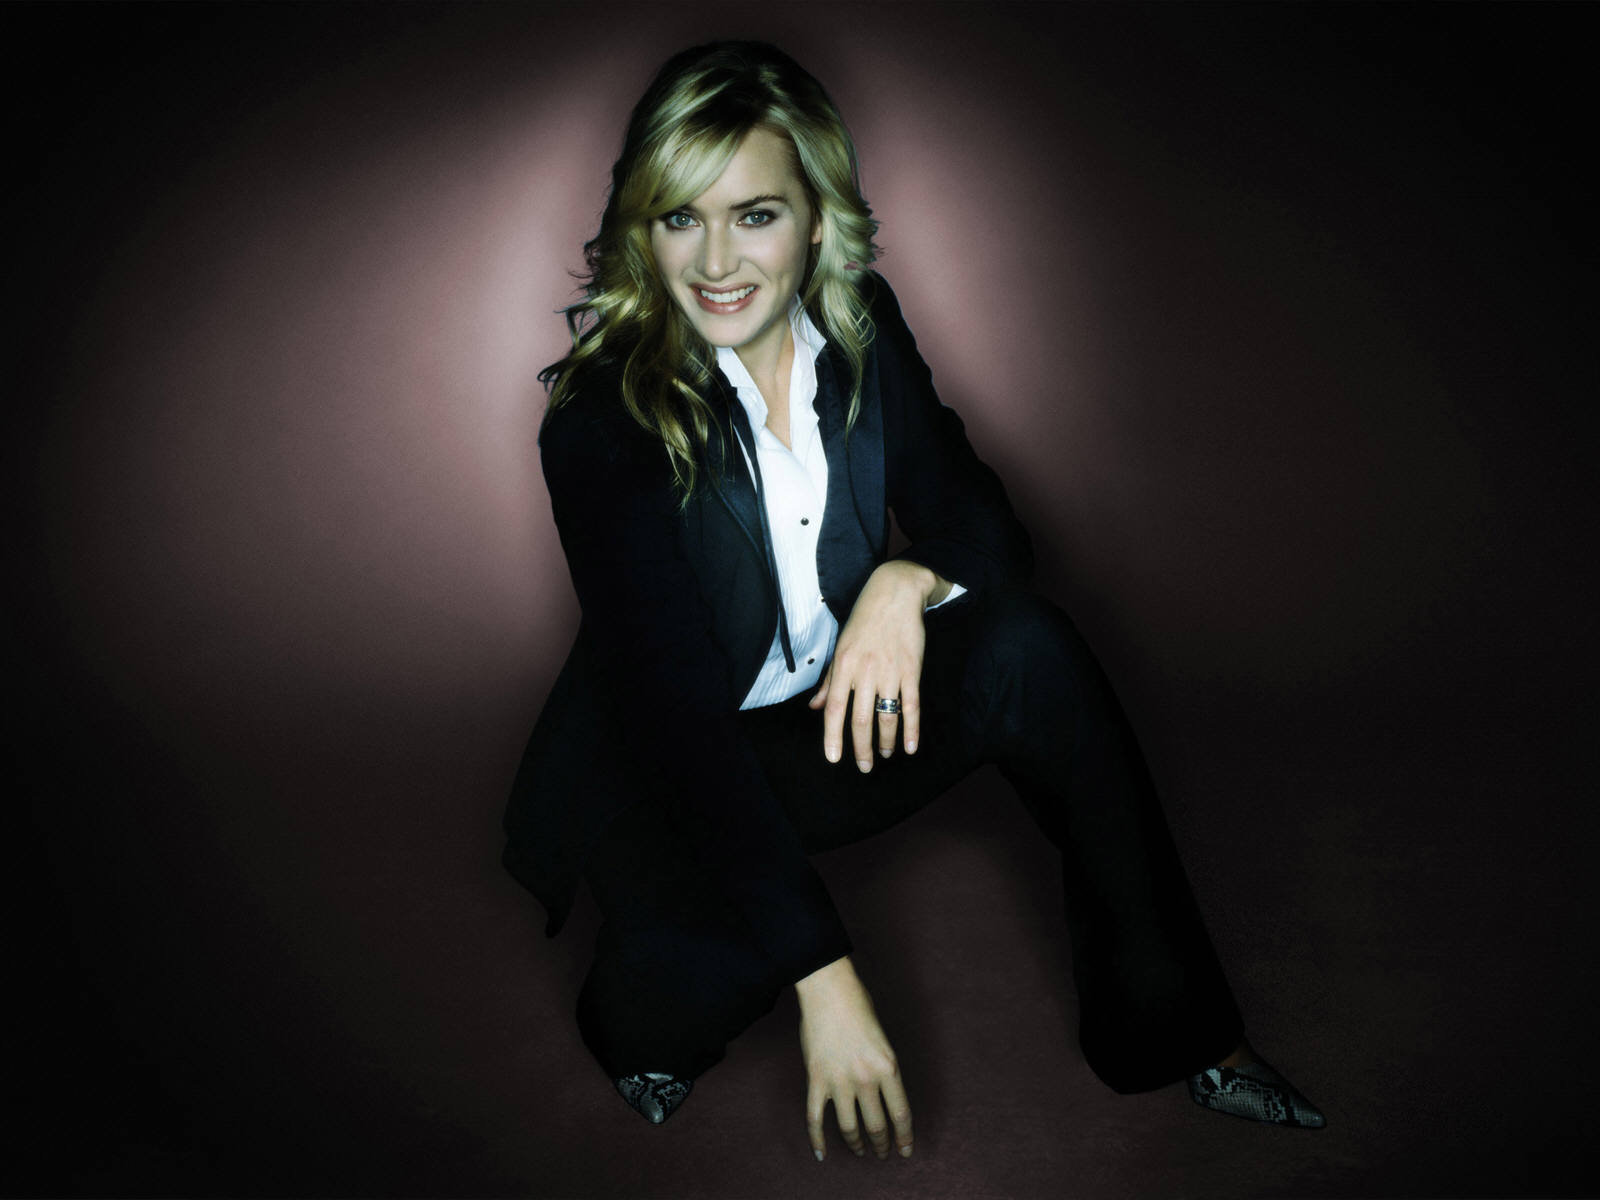 http://1.bp.blogspot.com/-fZuZomhReMo/Tx2jrsrphAI/AAAAAAAAASI/DhCZ0HwMDyU/s1600/The-best-top-hd-desktop-kate-winslet-wallpaper-kate-winslet-wallpapers-7.jpg